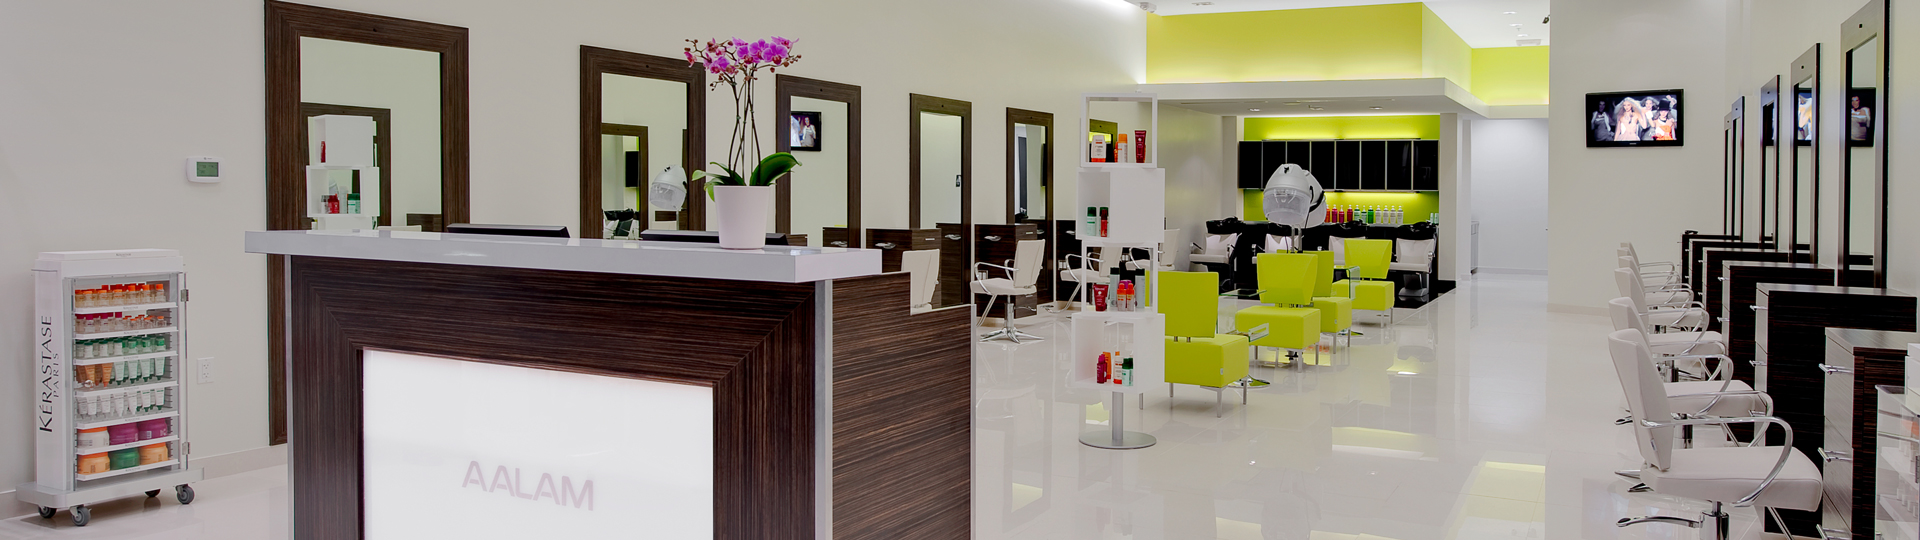 Promotions dallas best hair salon plano frisco for Aalam the salon reviews